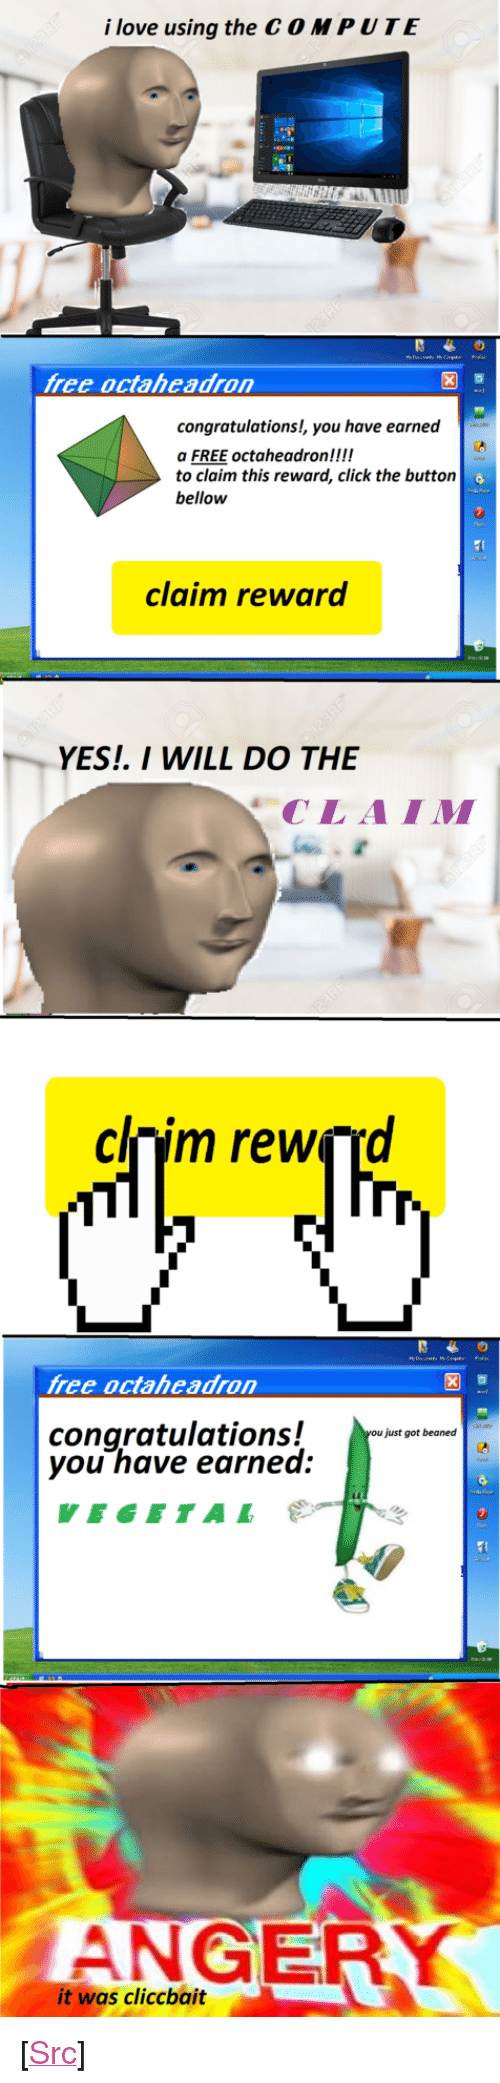 """Beaned: i love using the C O MPUTE  free octaheadron  congratulations!, you have earned  a FREE  to claim this reward, click the buttorn  bellow  octaheadronck the button  claim reward  YES. I WILL DO THE  CLAIM  clnim rewçrd  free octaheadron  congratulations!  you have earned  just got beaned  VEGETAL  ANGER  it was cliccbait <p>[<a href=""""https://www.reddit.com/r/surrealmemes/comments/7yelgb/clickbait/"""">Src</a>]</p>"""